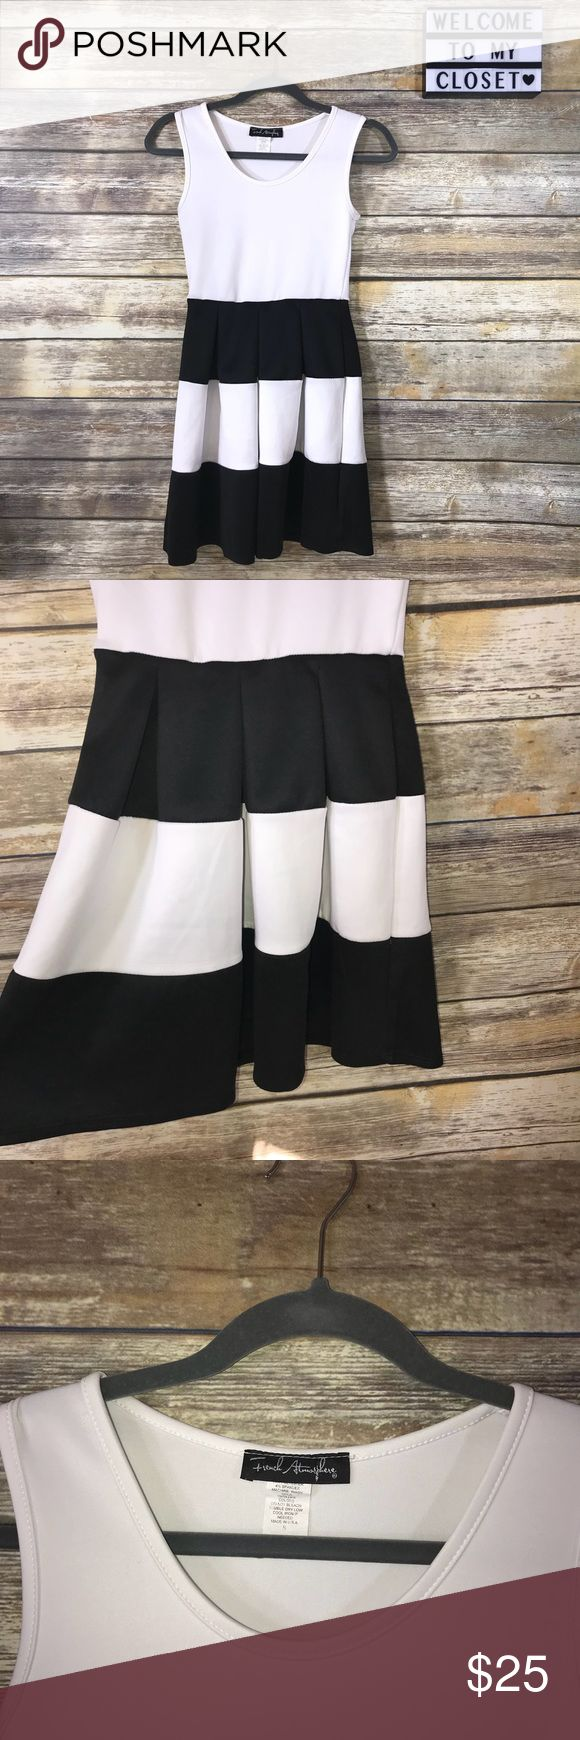 """Black and white cocktail dress Gorgeous black and white striped cocktail dress. In good condition. Size small. Underarm to underarm: 13"""". 